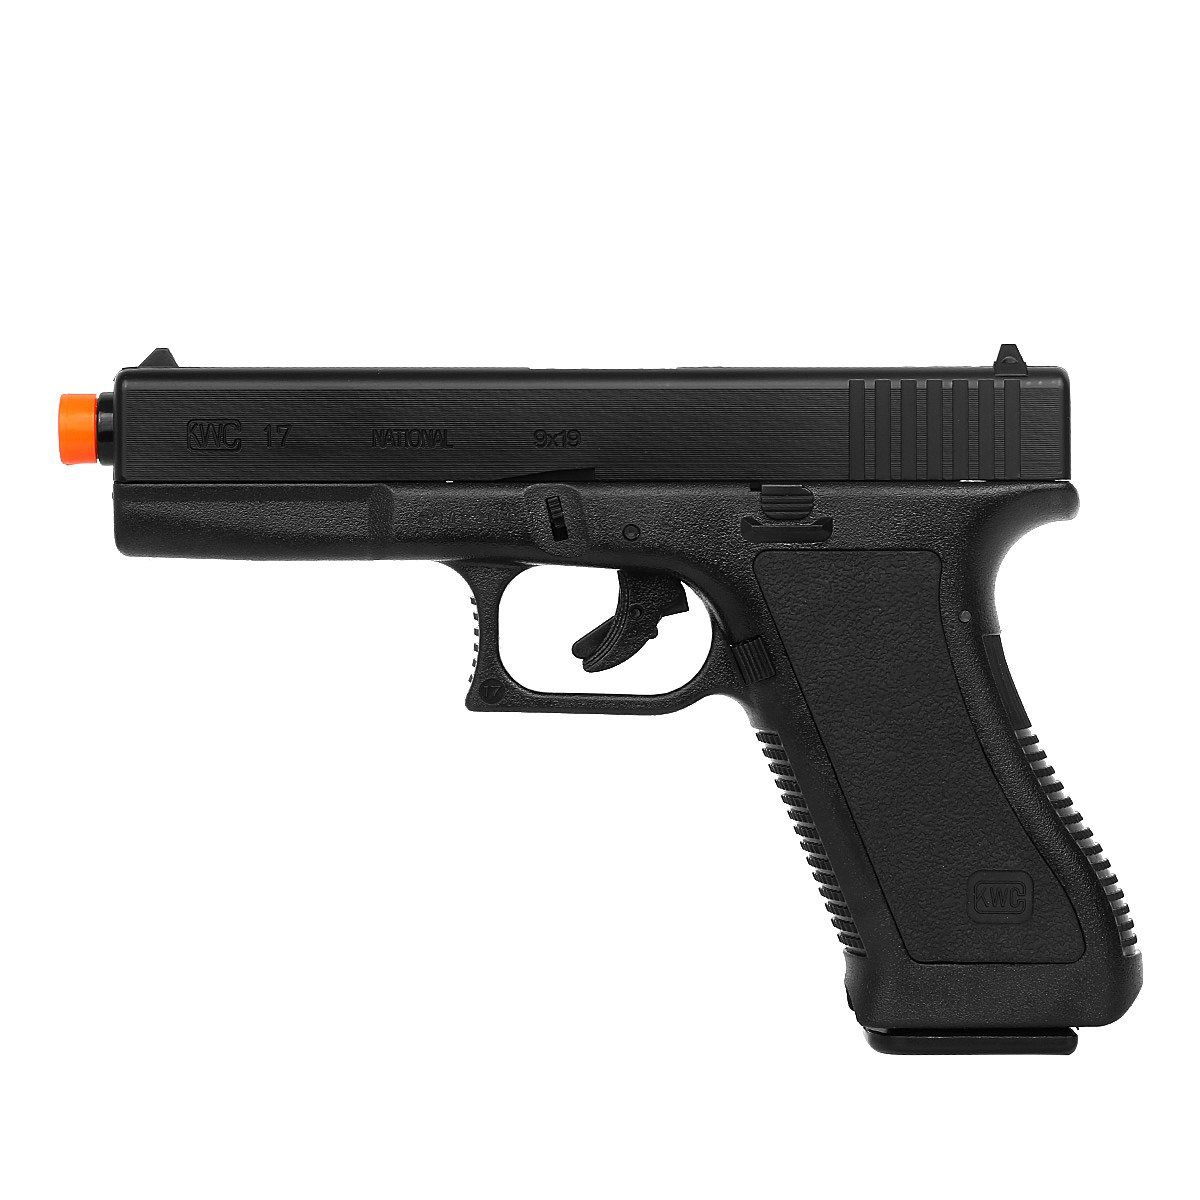 Pistola Airsoft Rossi KWC K17 Spring 6mm